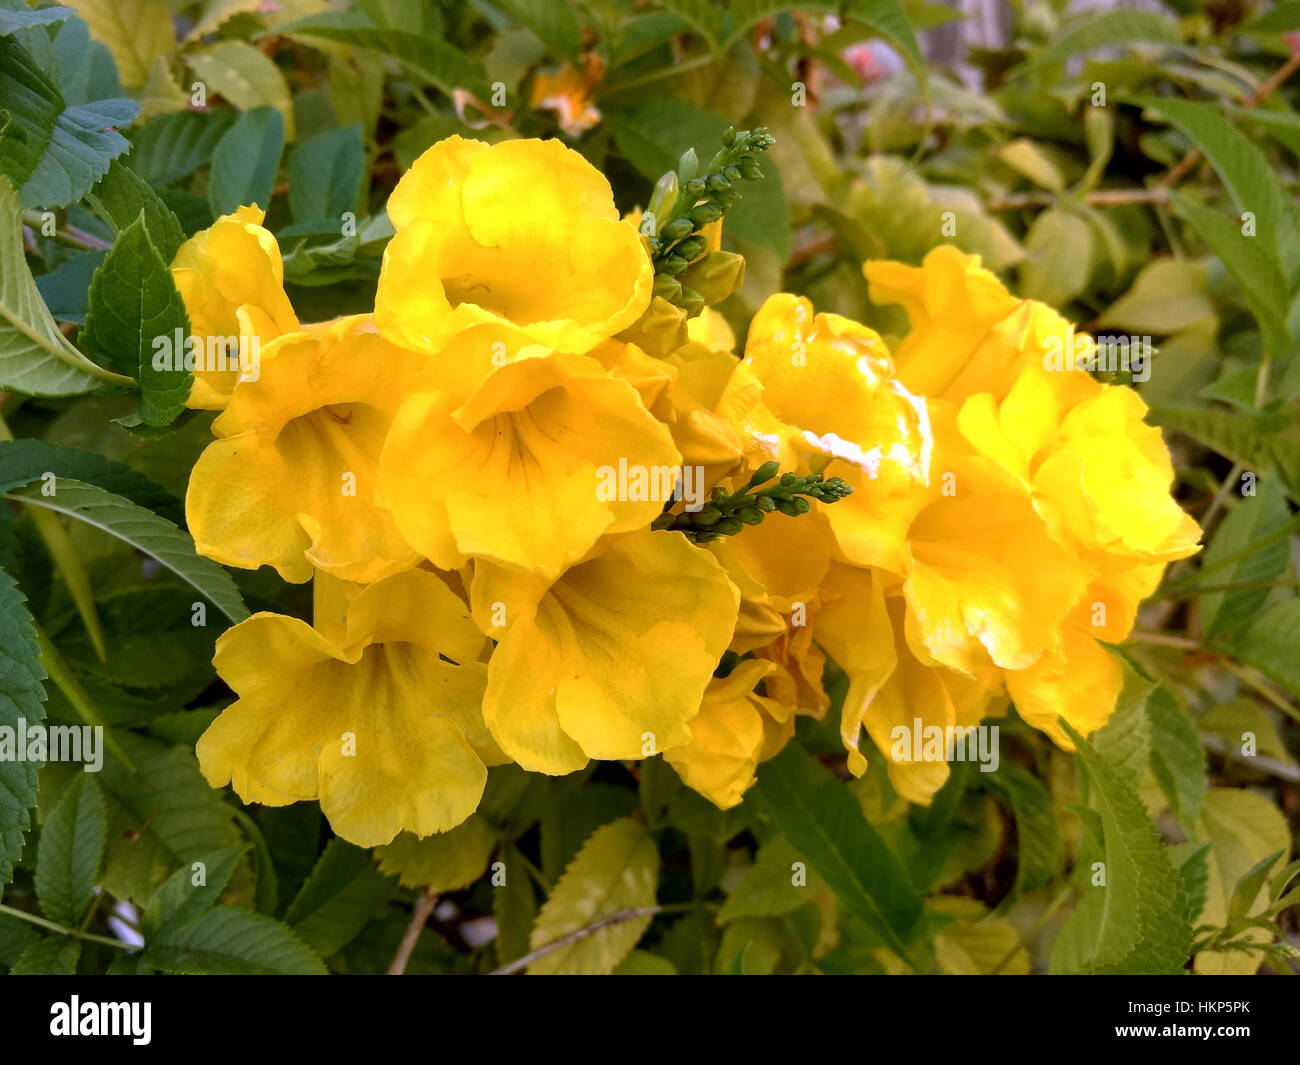 Yellow Garden Flowers With Five Petals Stock Photo 132638539 Alamy